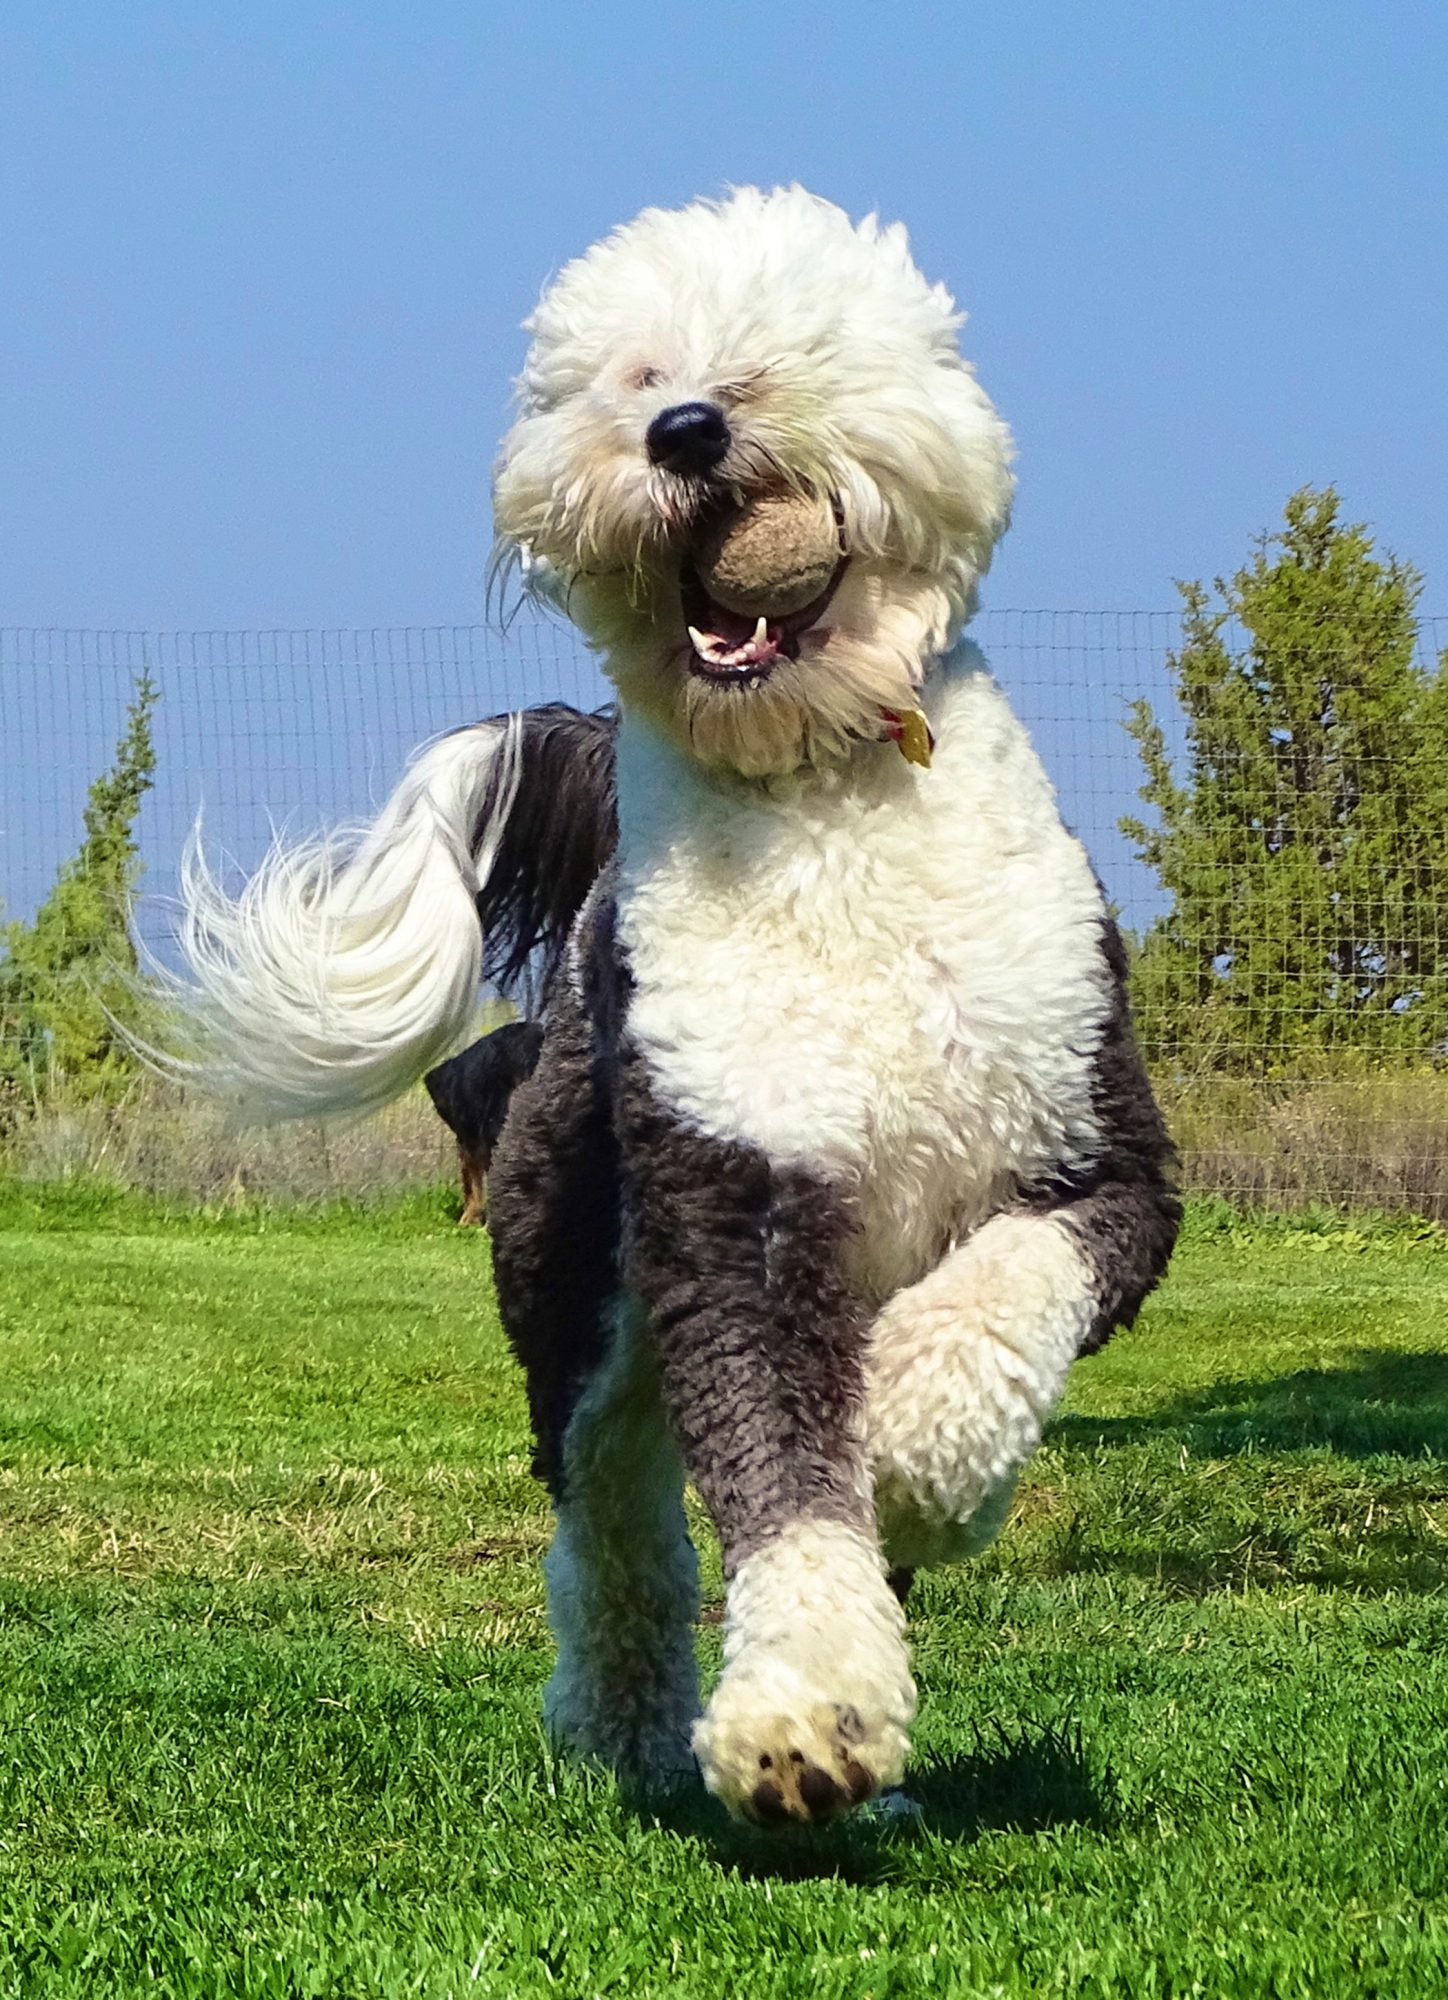 sheepadoodle running outside with a tennis ball in their mouth